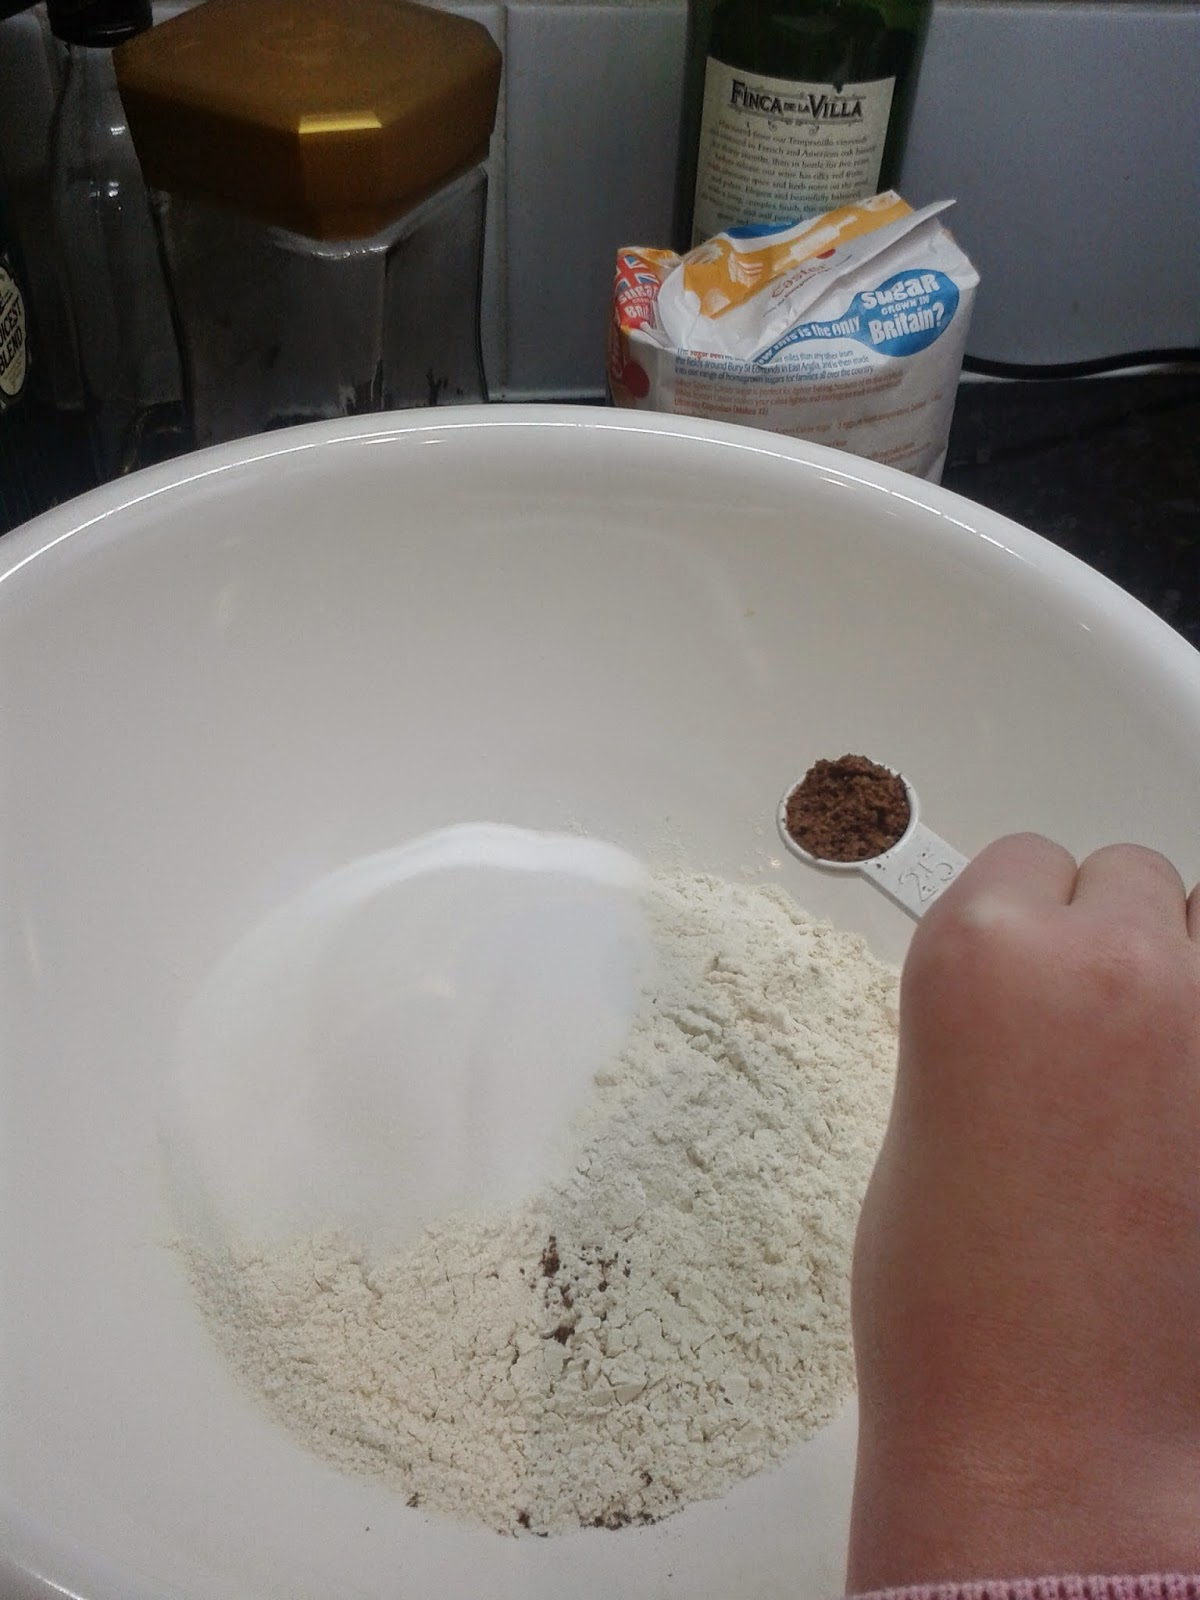 Welsh cakes recipe - adding the spice to the flour and sugar